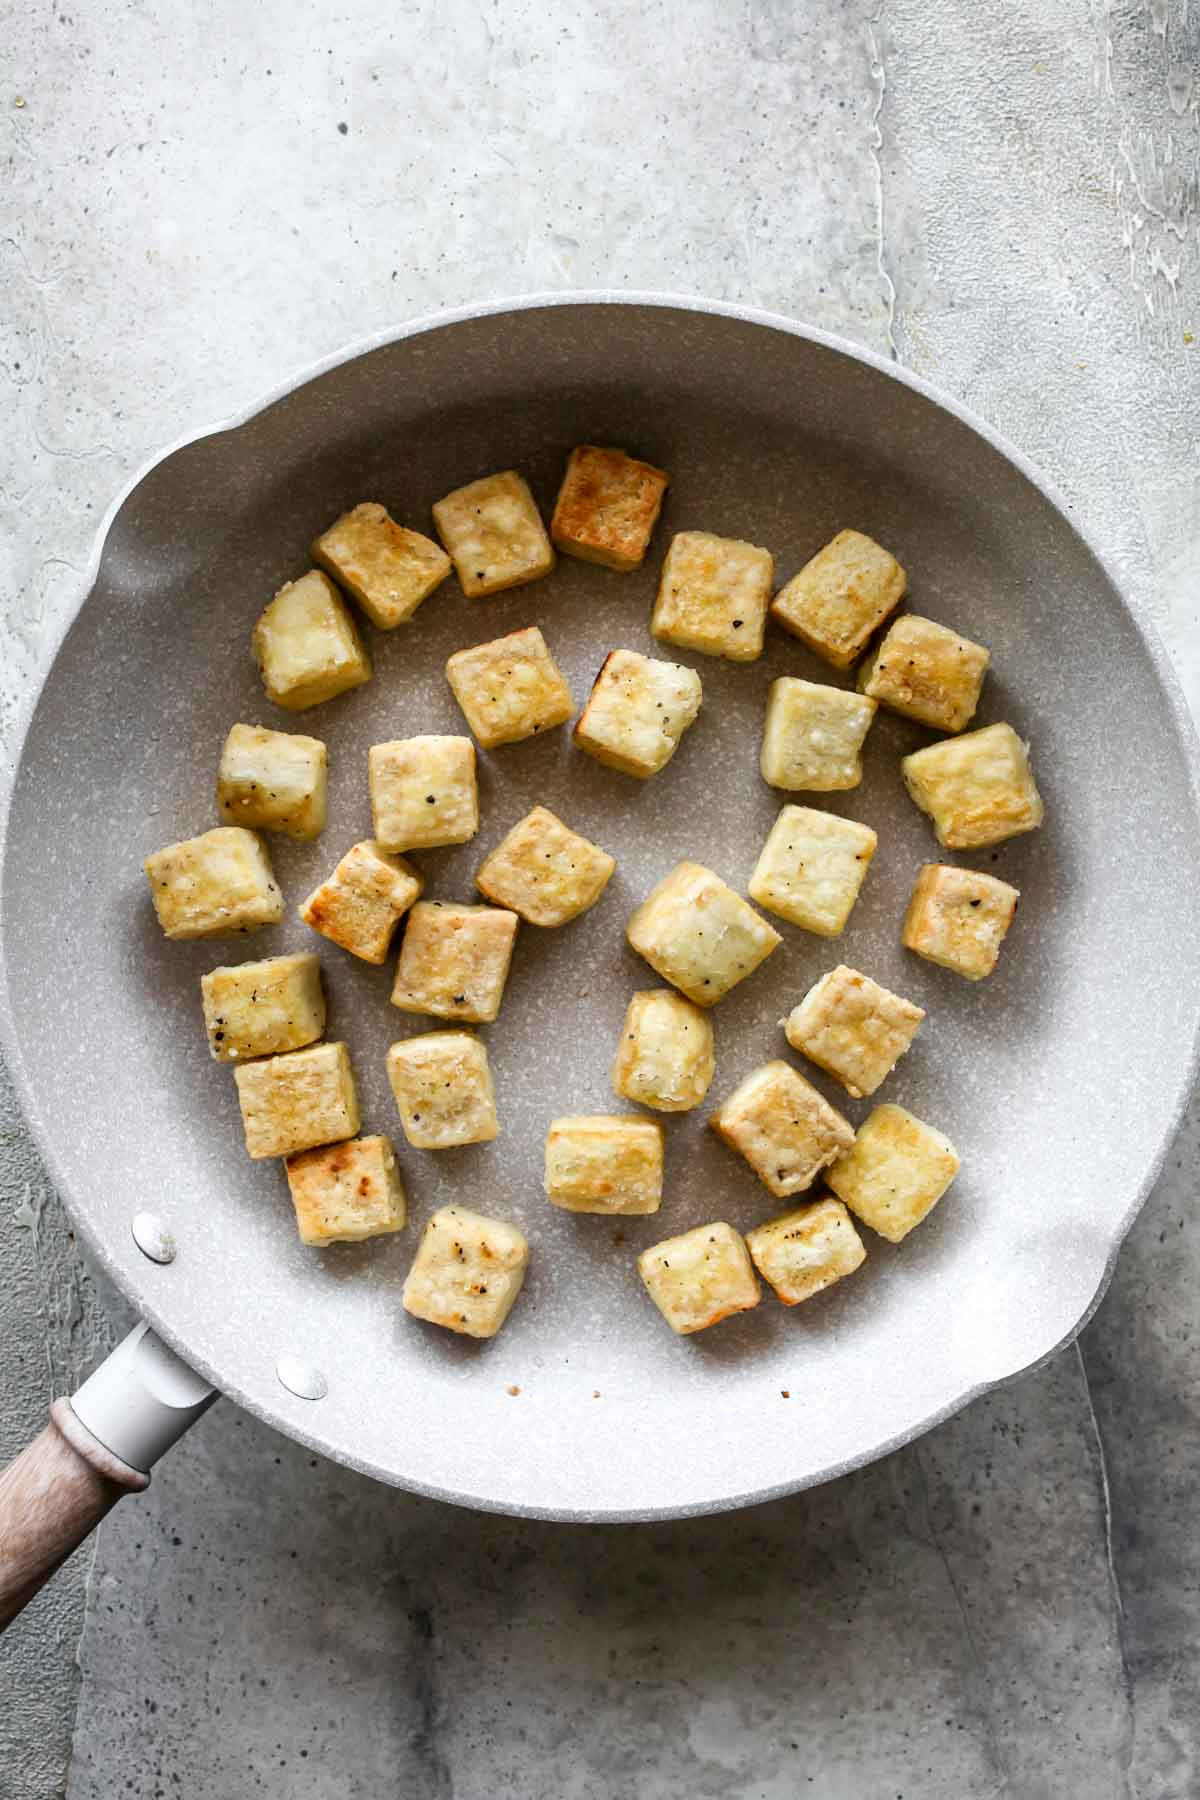 Tofu cubes sauteing in a white skillet